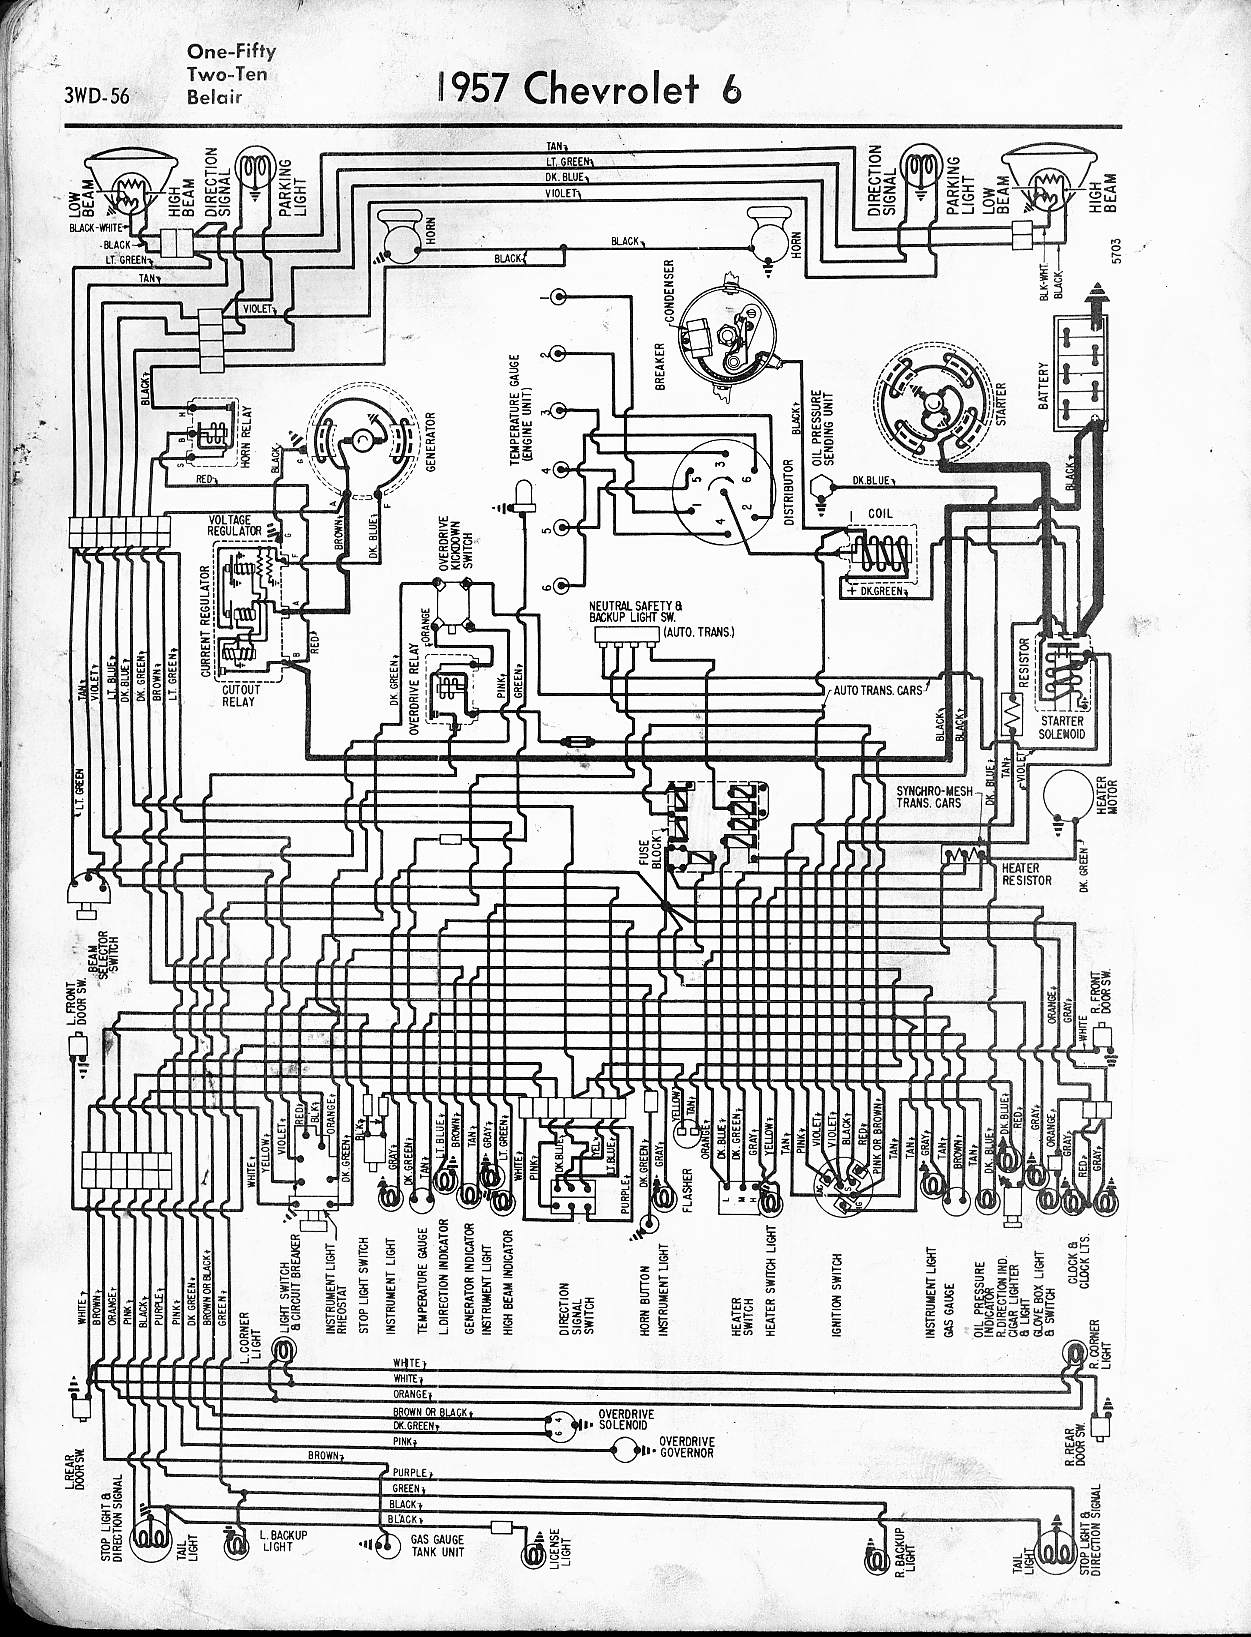 1966 Chevy Truck Wiring Harness Diagram Basic Guide C10 57 65 Diagrams Rh Oldcarmanualproject Com